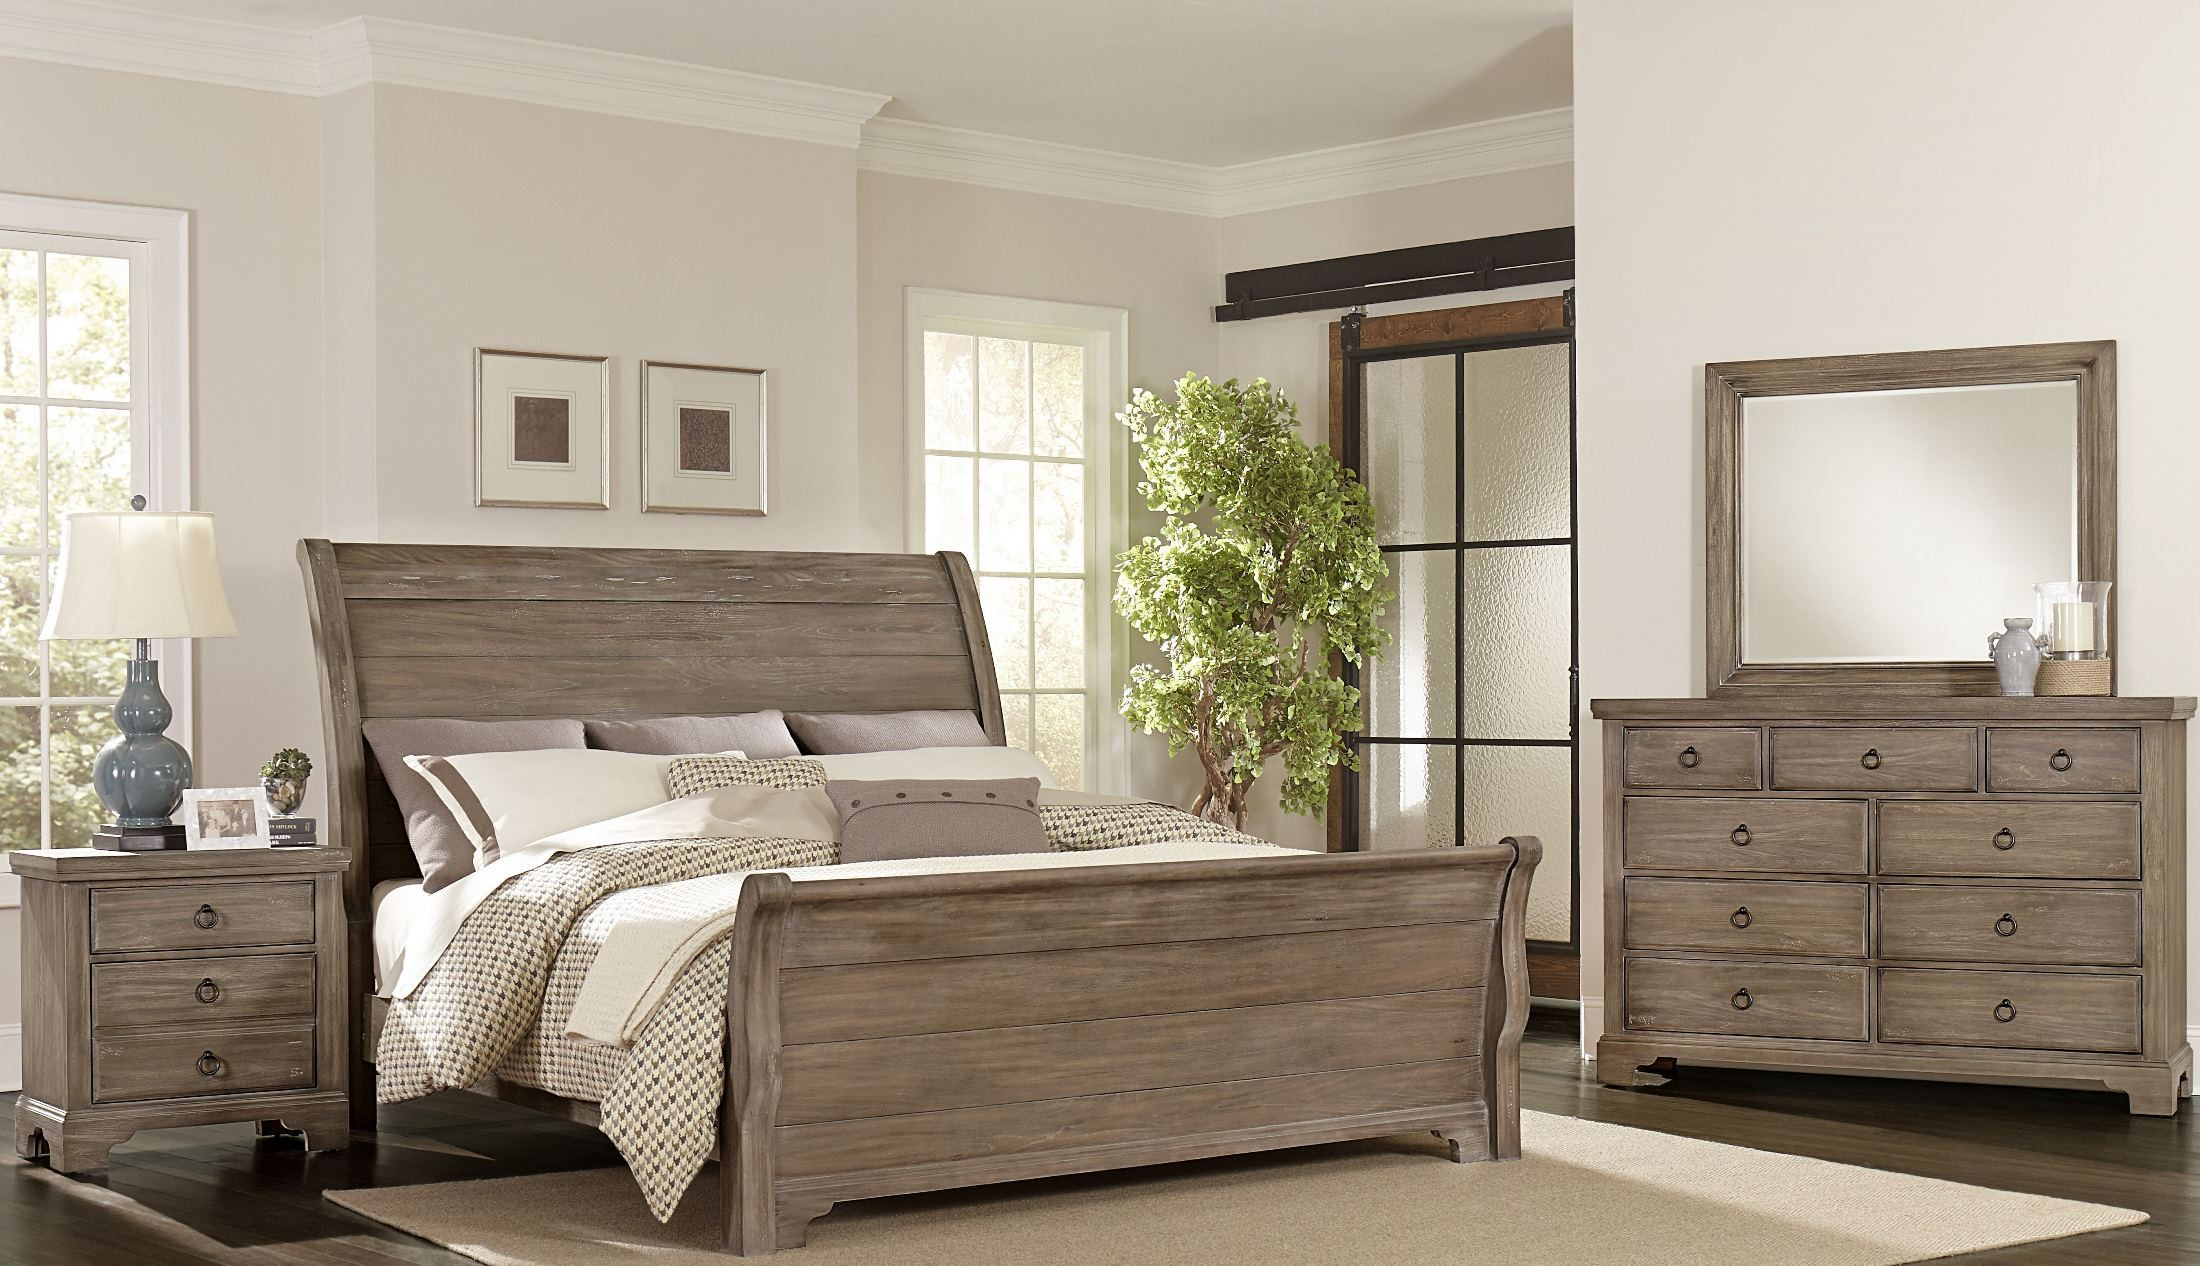 Whiskey barrel rustic gray sleigh bedroom set from Gray bedroom furniture